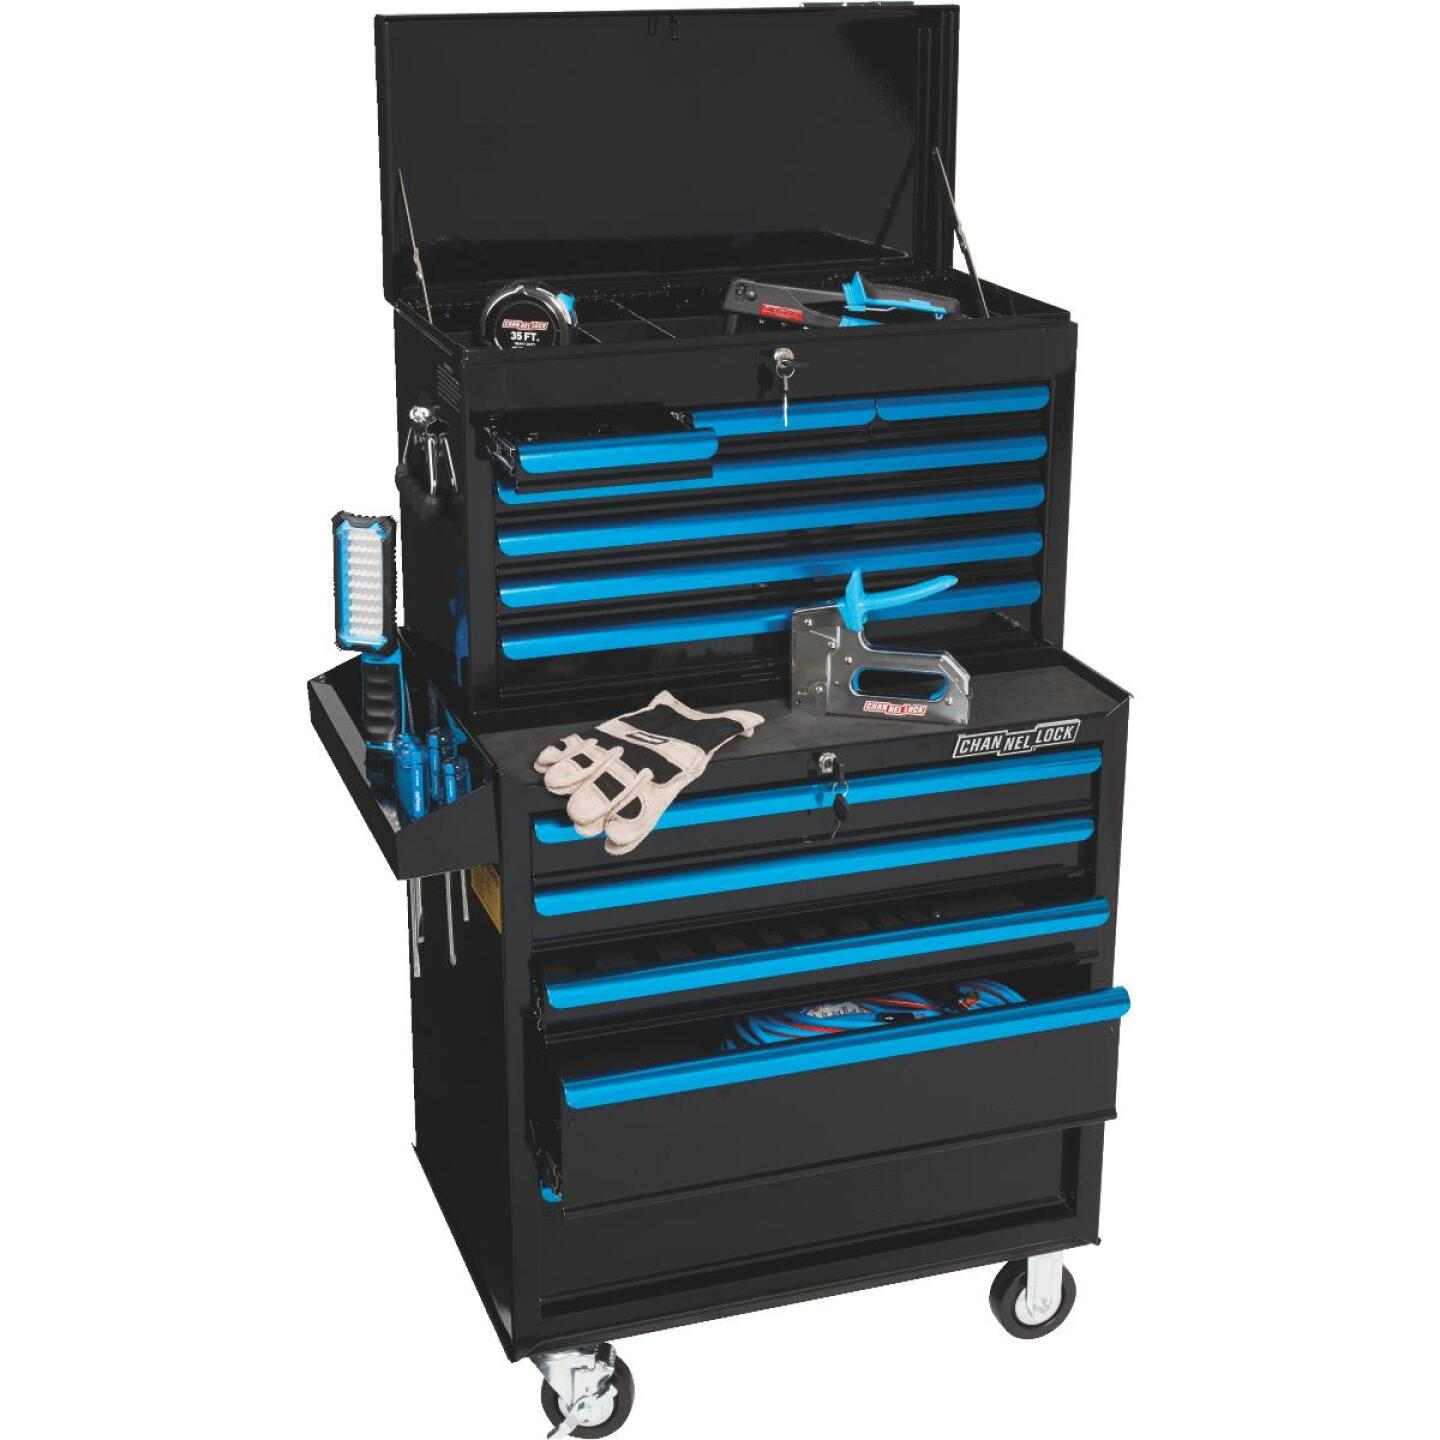 Channellock 26 In. 5-Drawer Tool Roller Cabinet Image 2